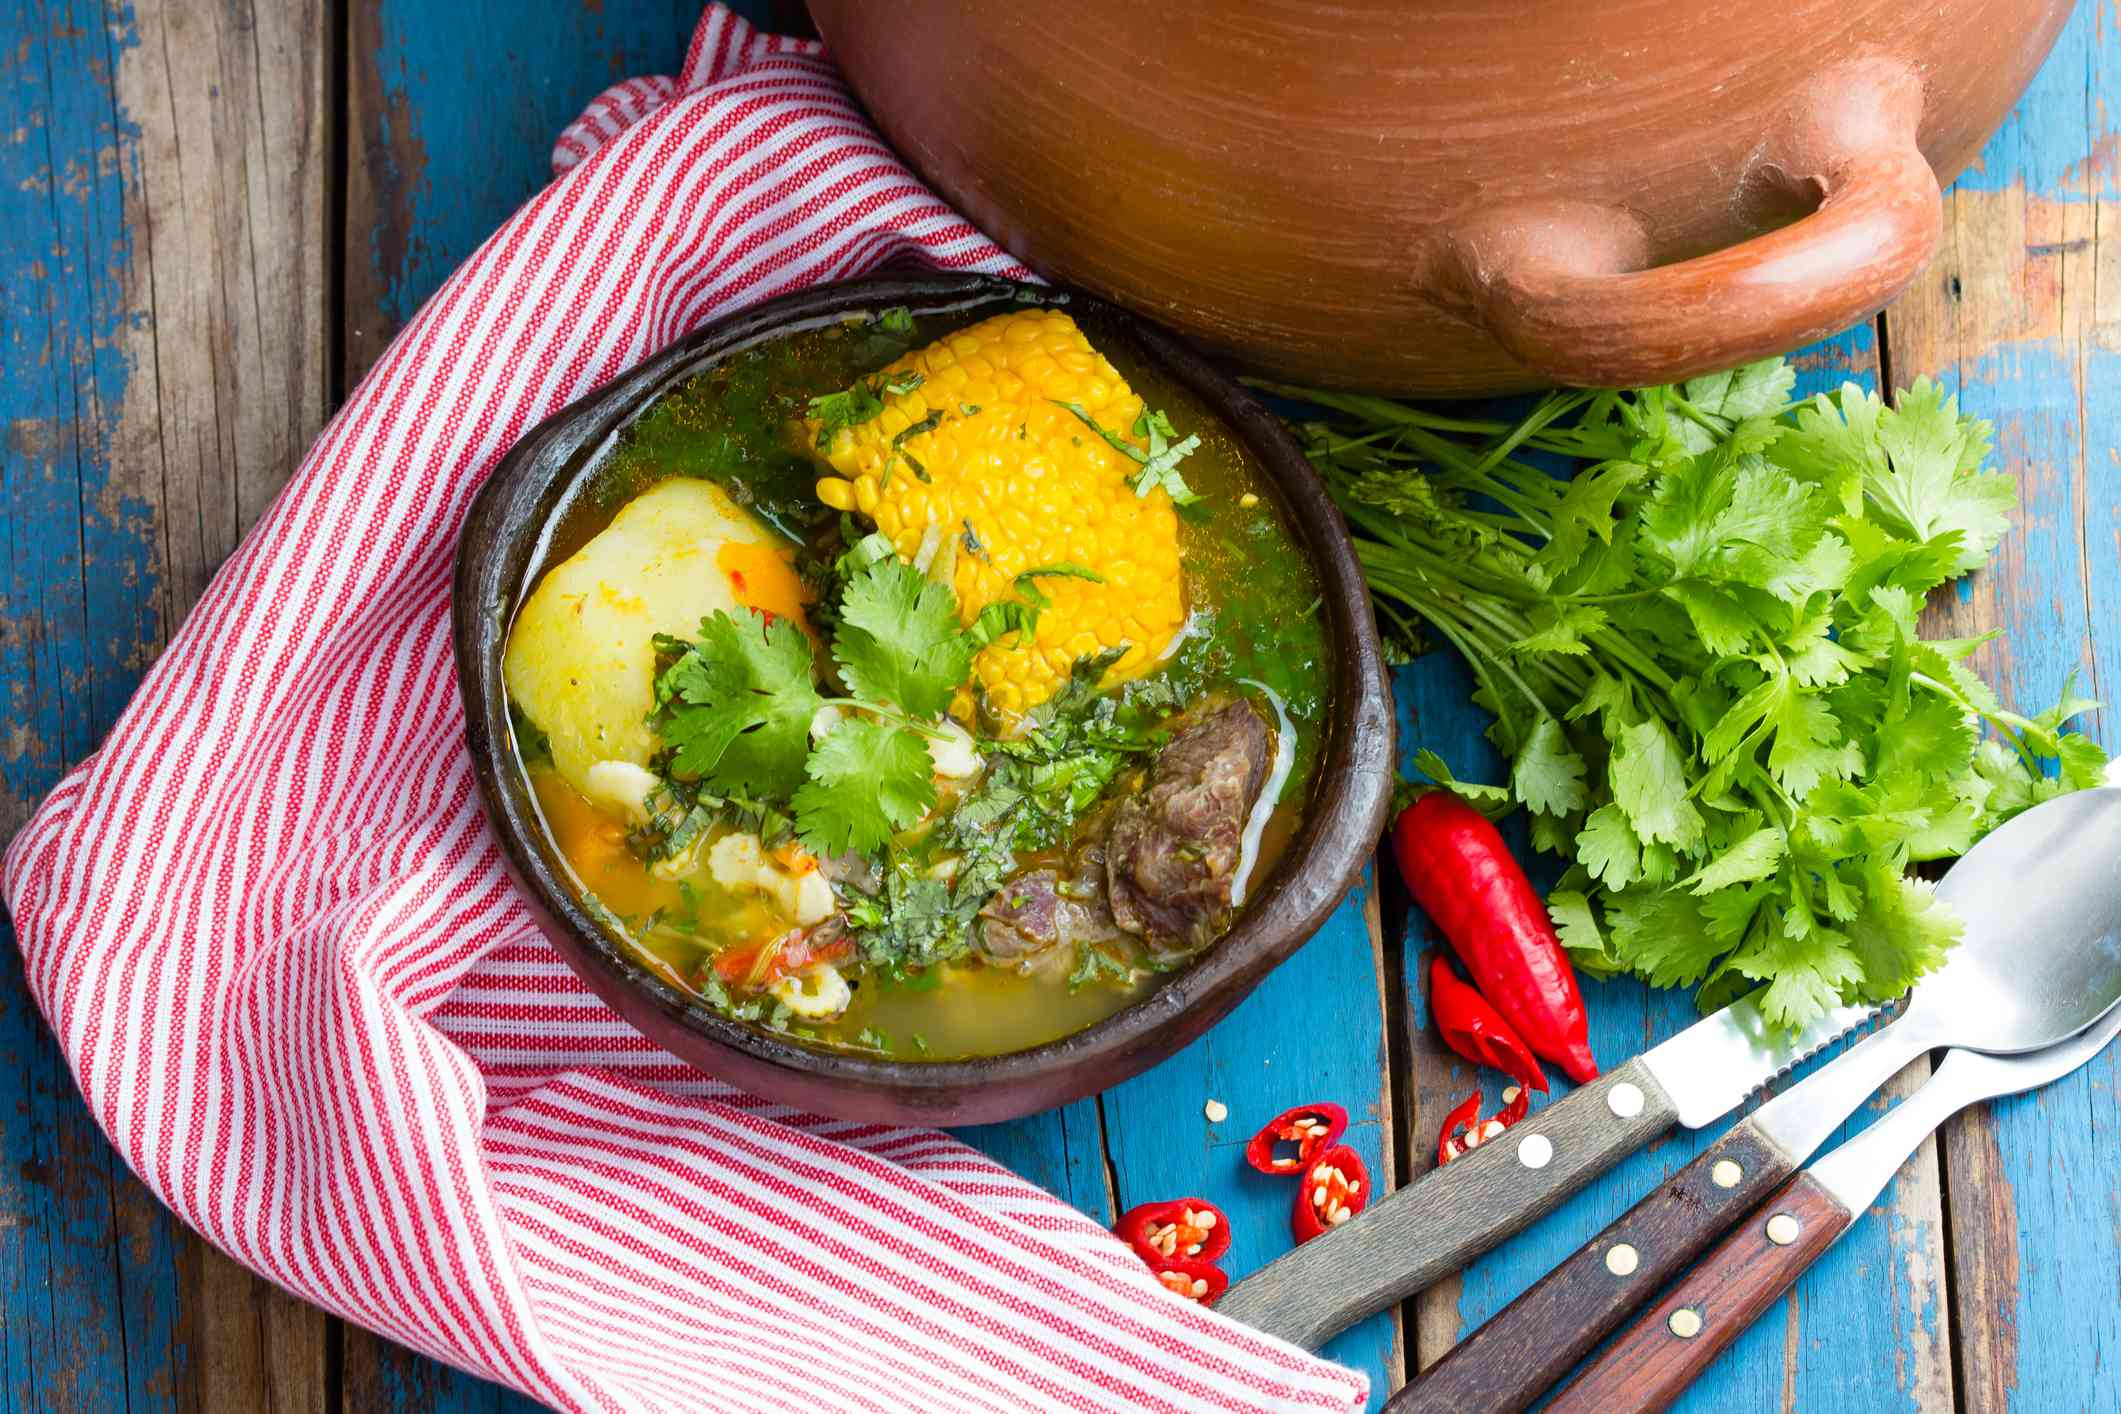 Beef cazuela on a blue table with silverware and towel